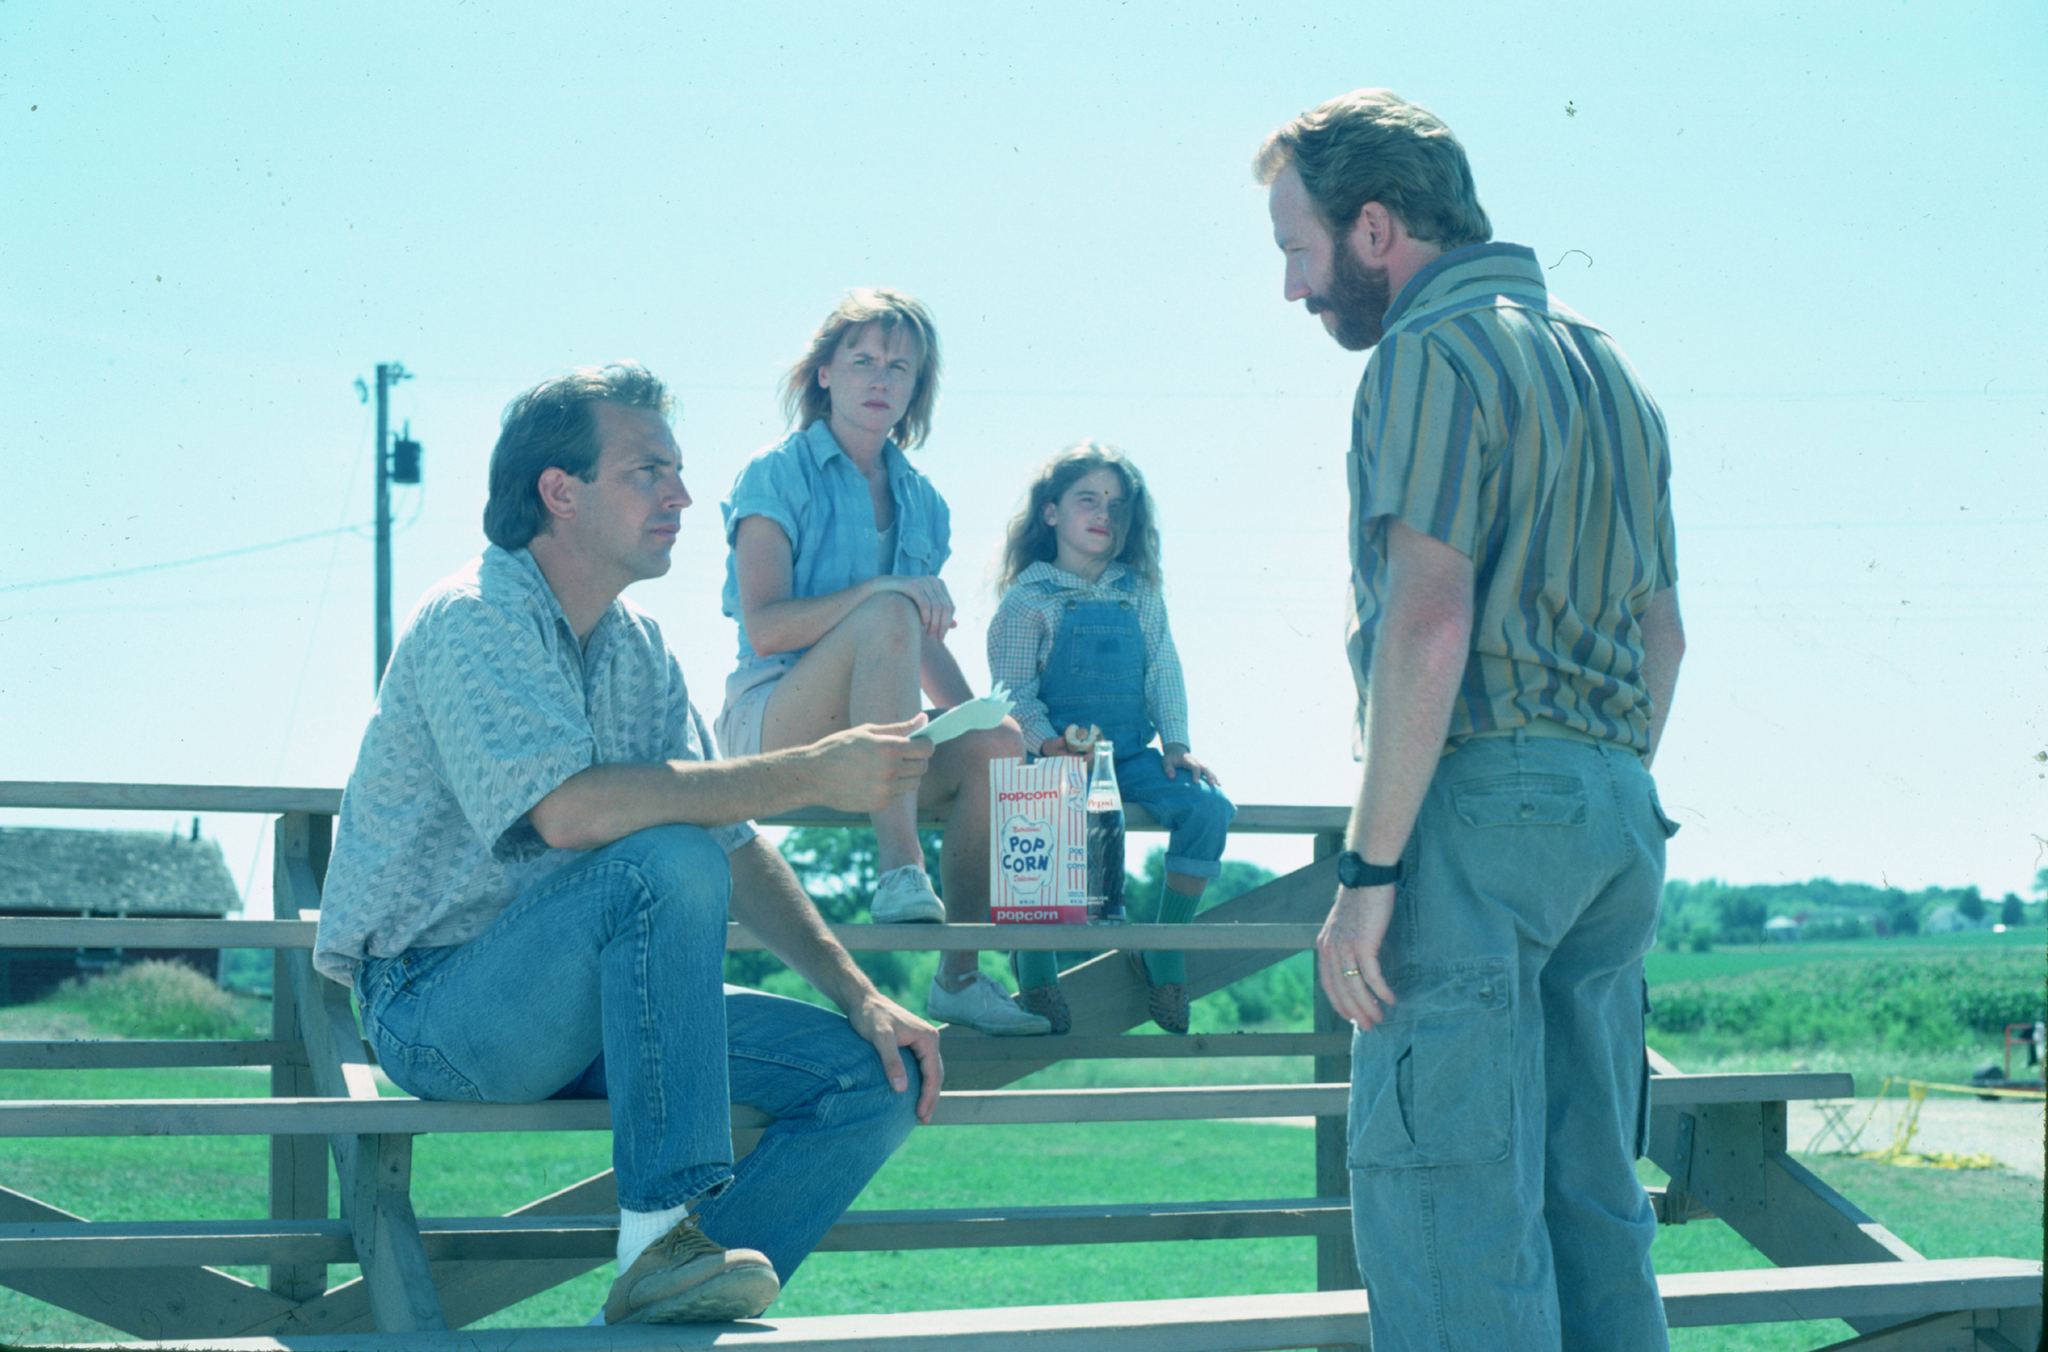 Kevin Costner, Gaby Hoffmann, Amy Madigan, and Timothy Busfield in Field of Dreams (1989)